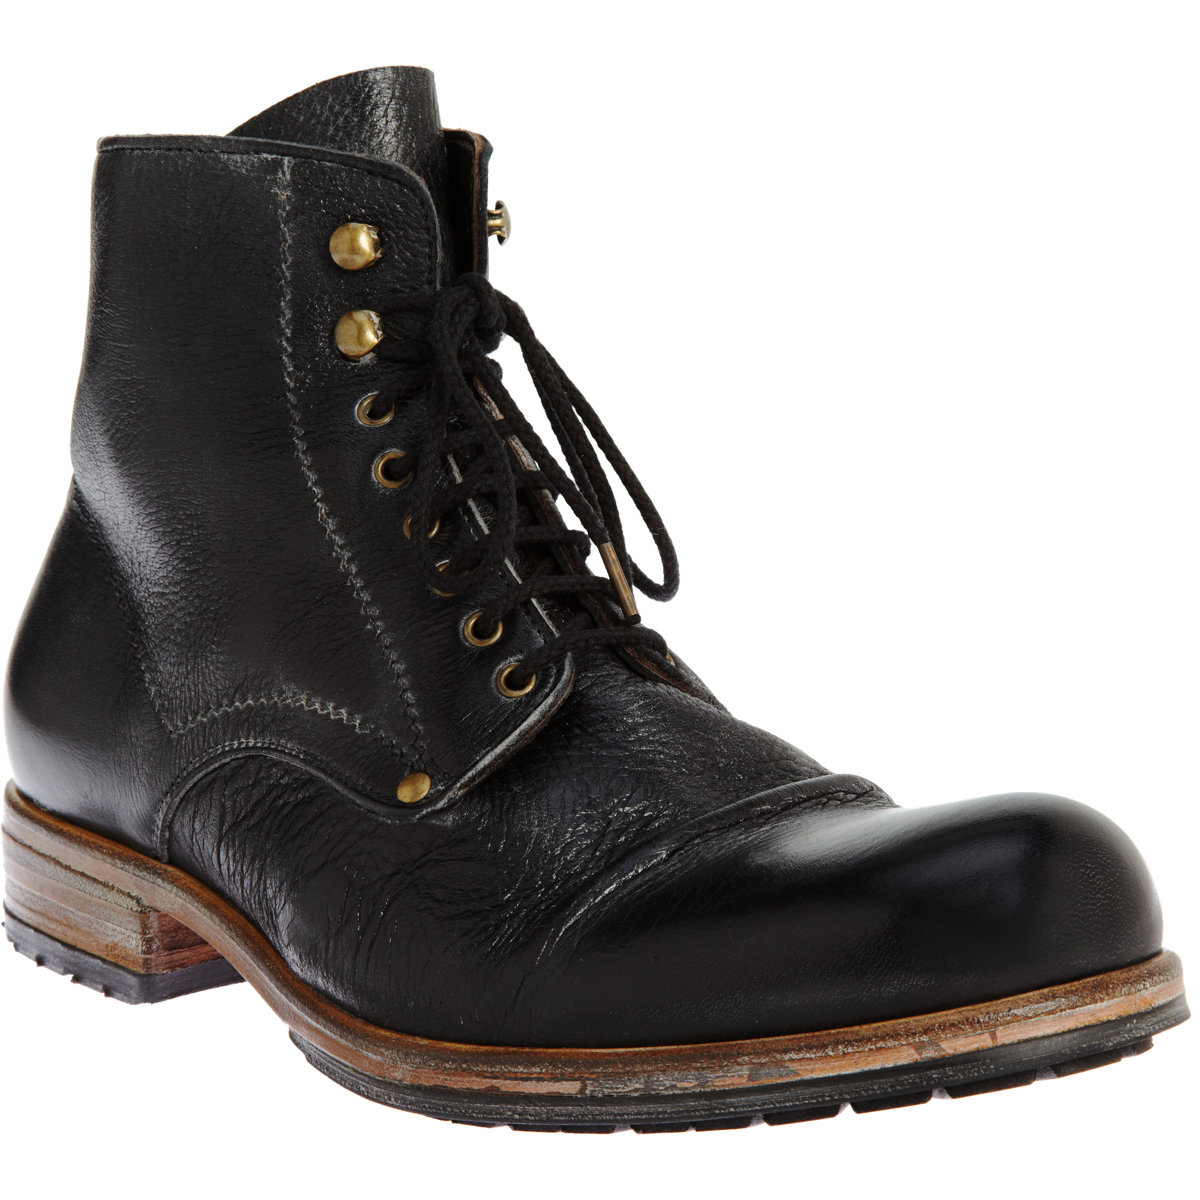 Lyst - Shoto Laceup Boot in Black for Men